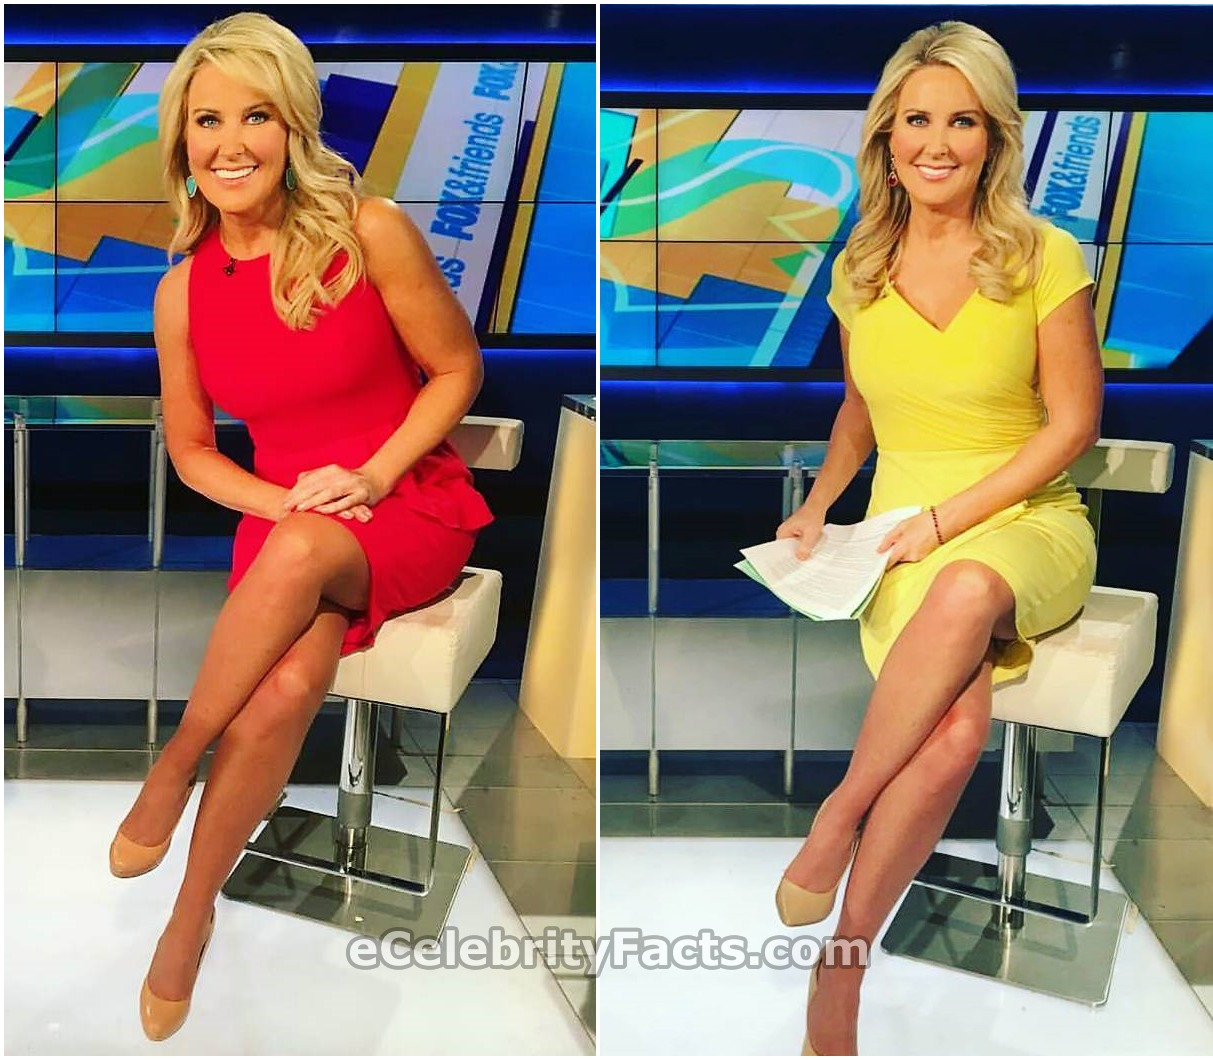 Heather Childers on Fox & Friends set wearing sexy dresses baring her legs